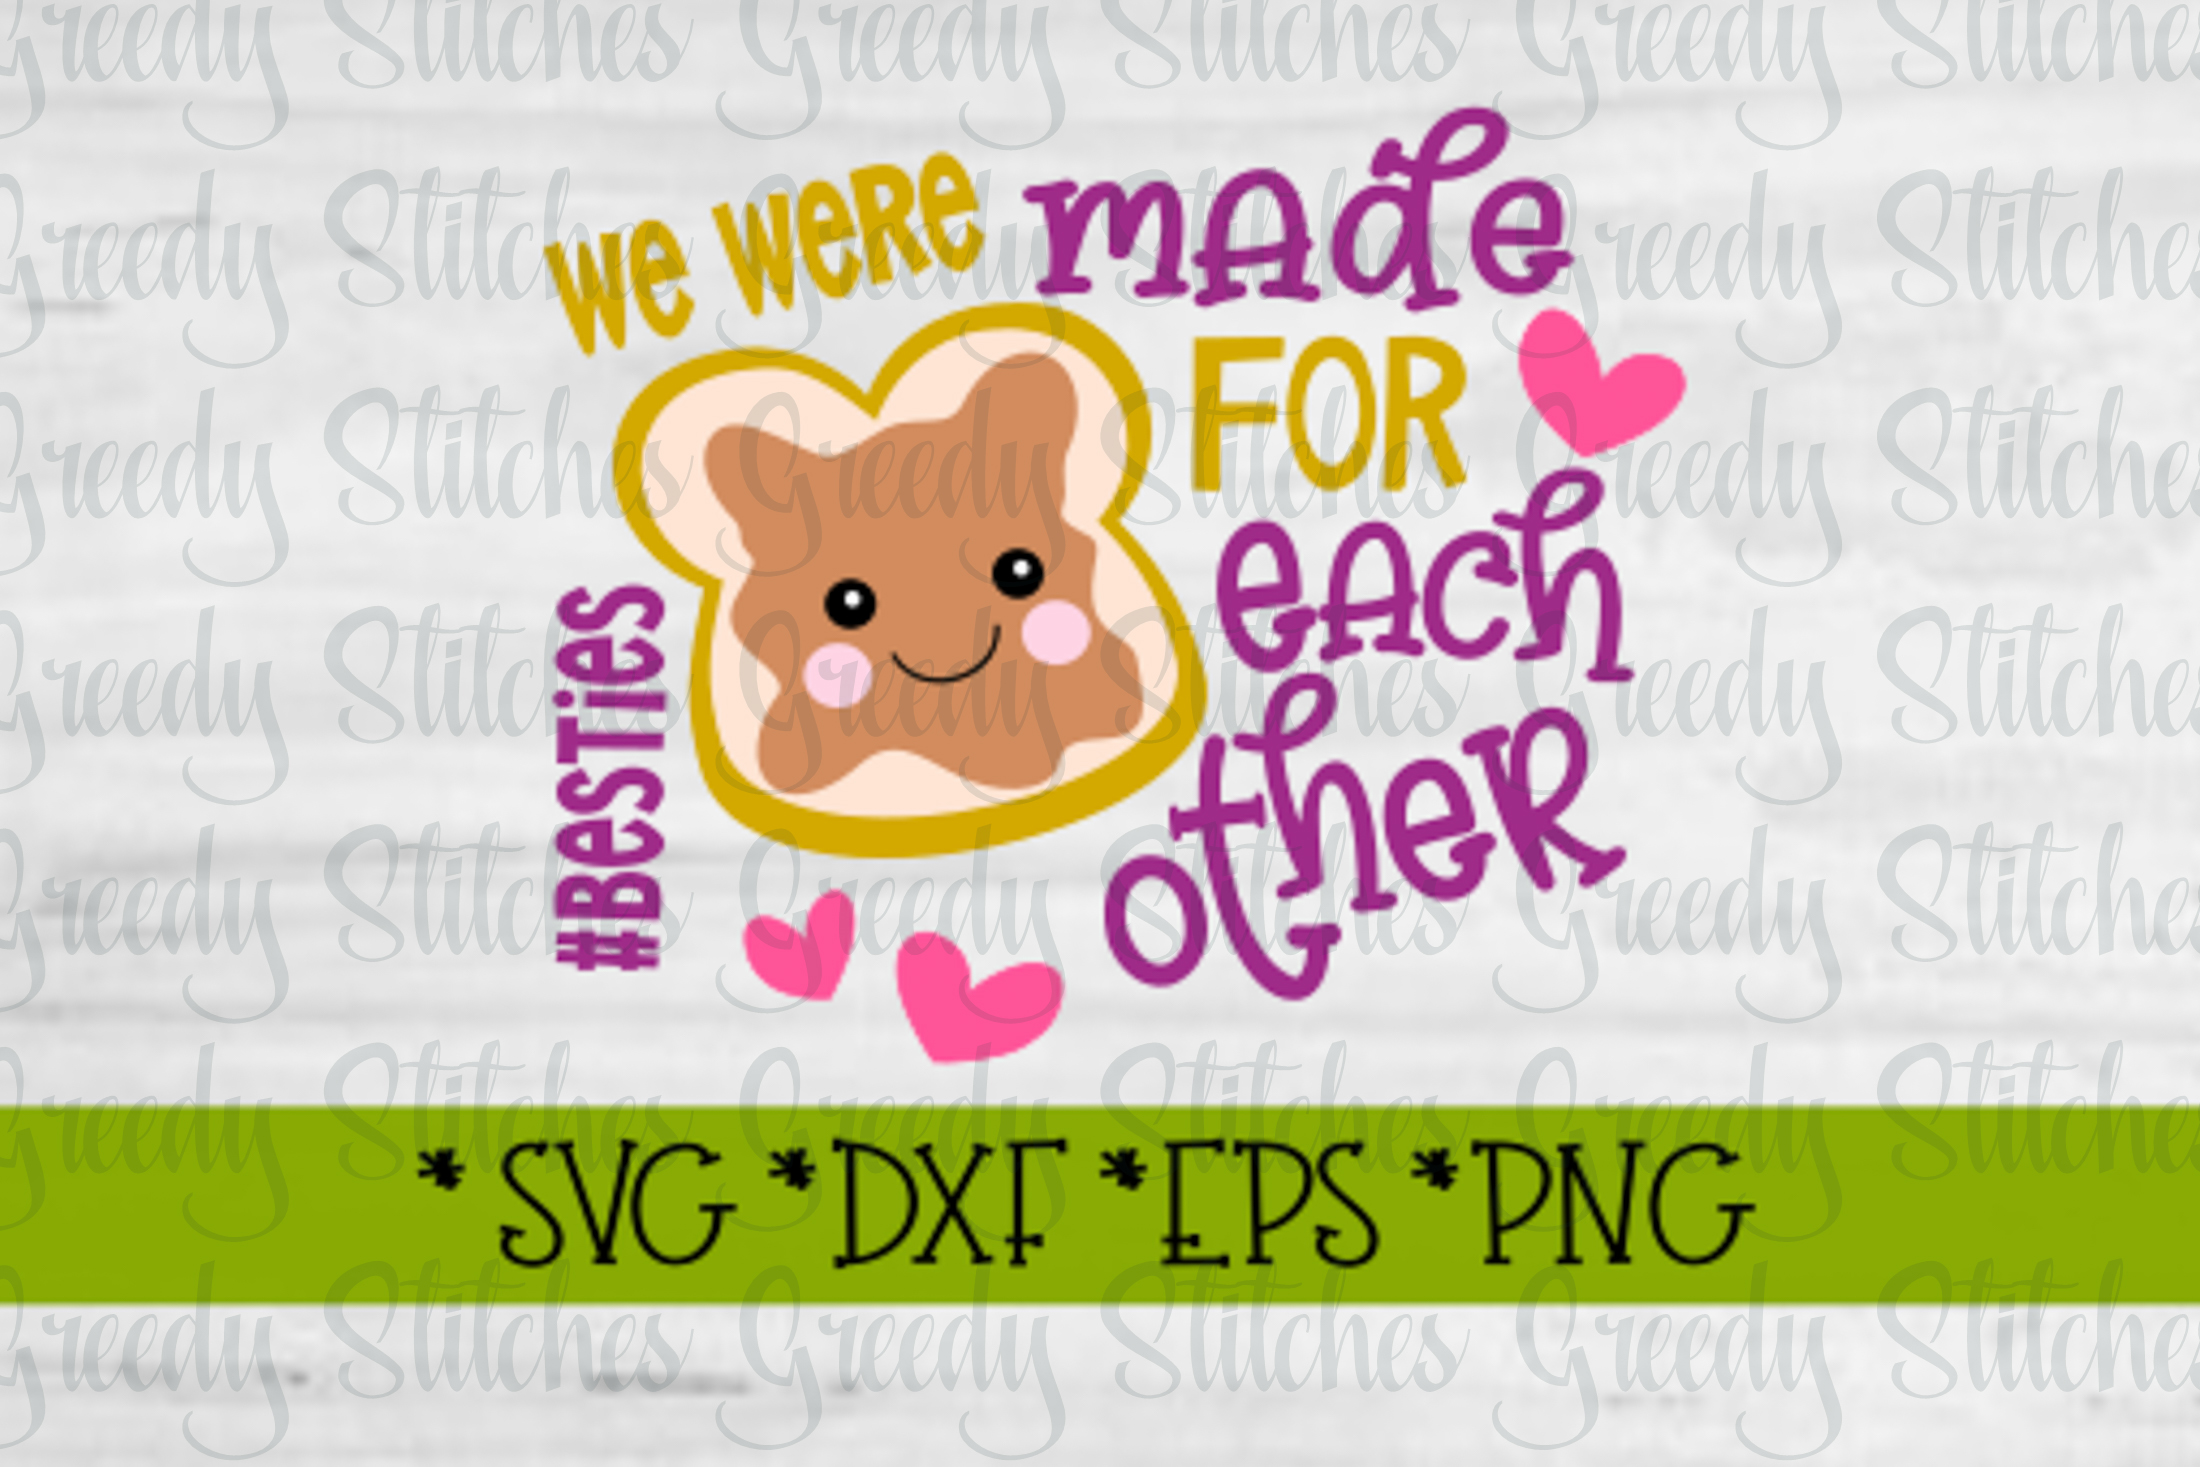 Peanut Butter & Jelly SVG DXF EPS PNG | Best Friends SVG DXF example image 20